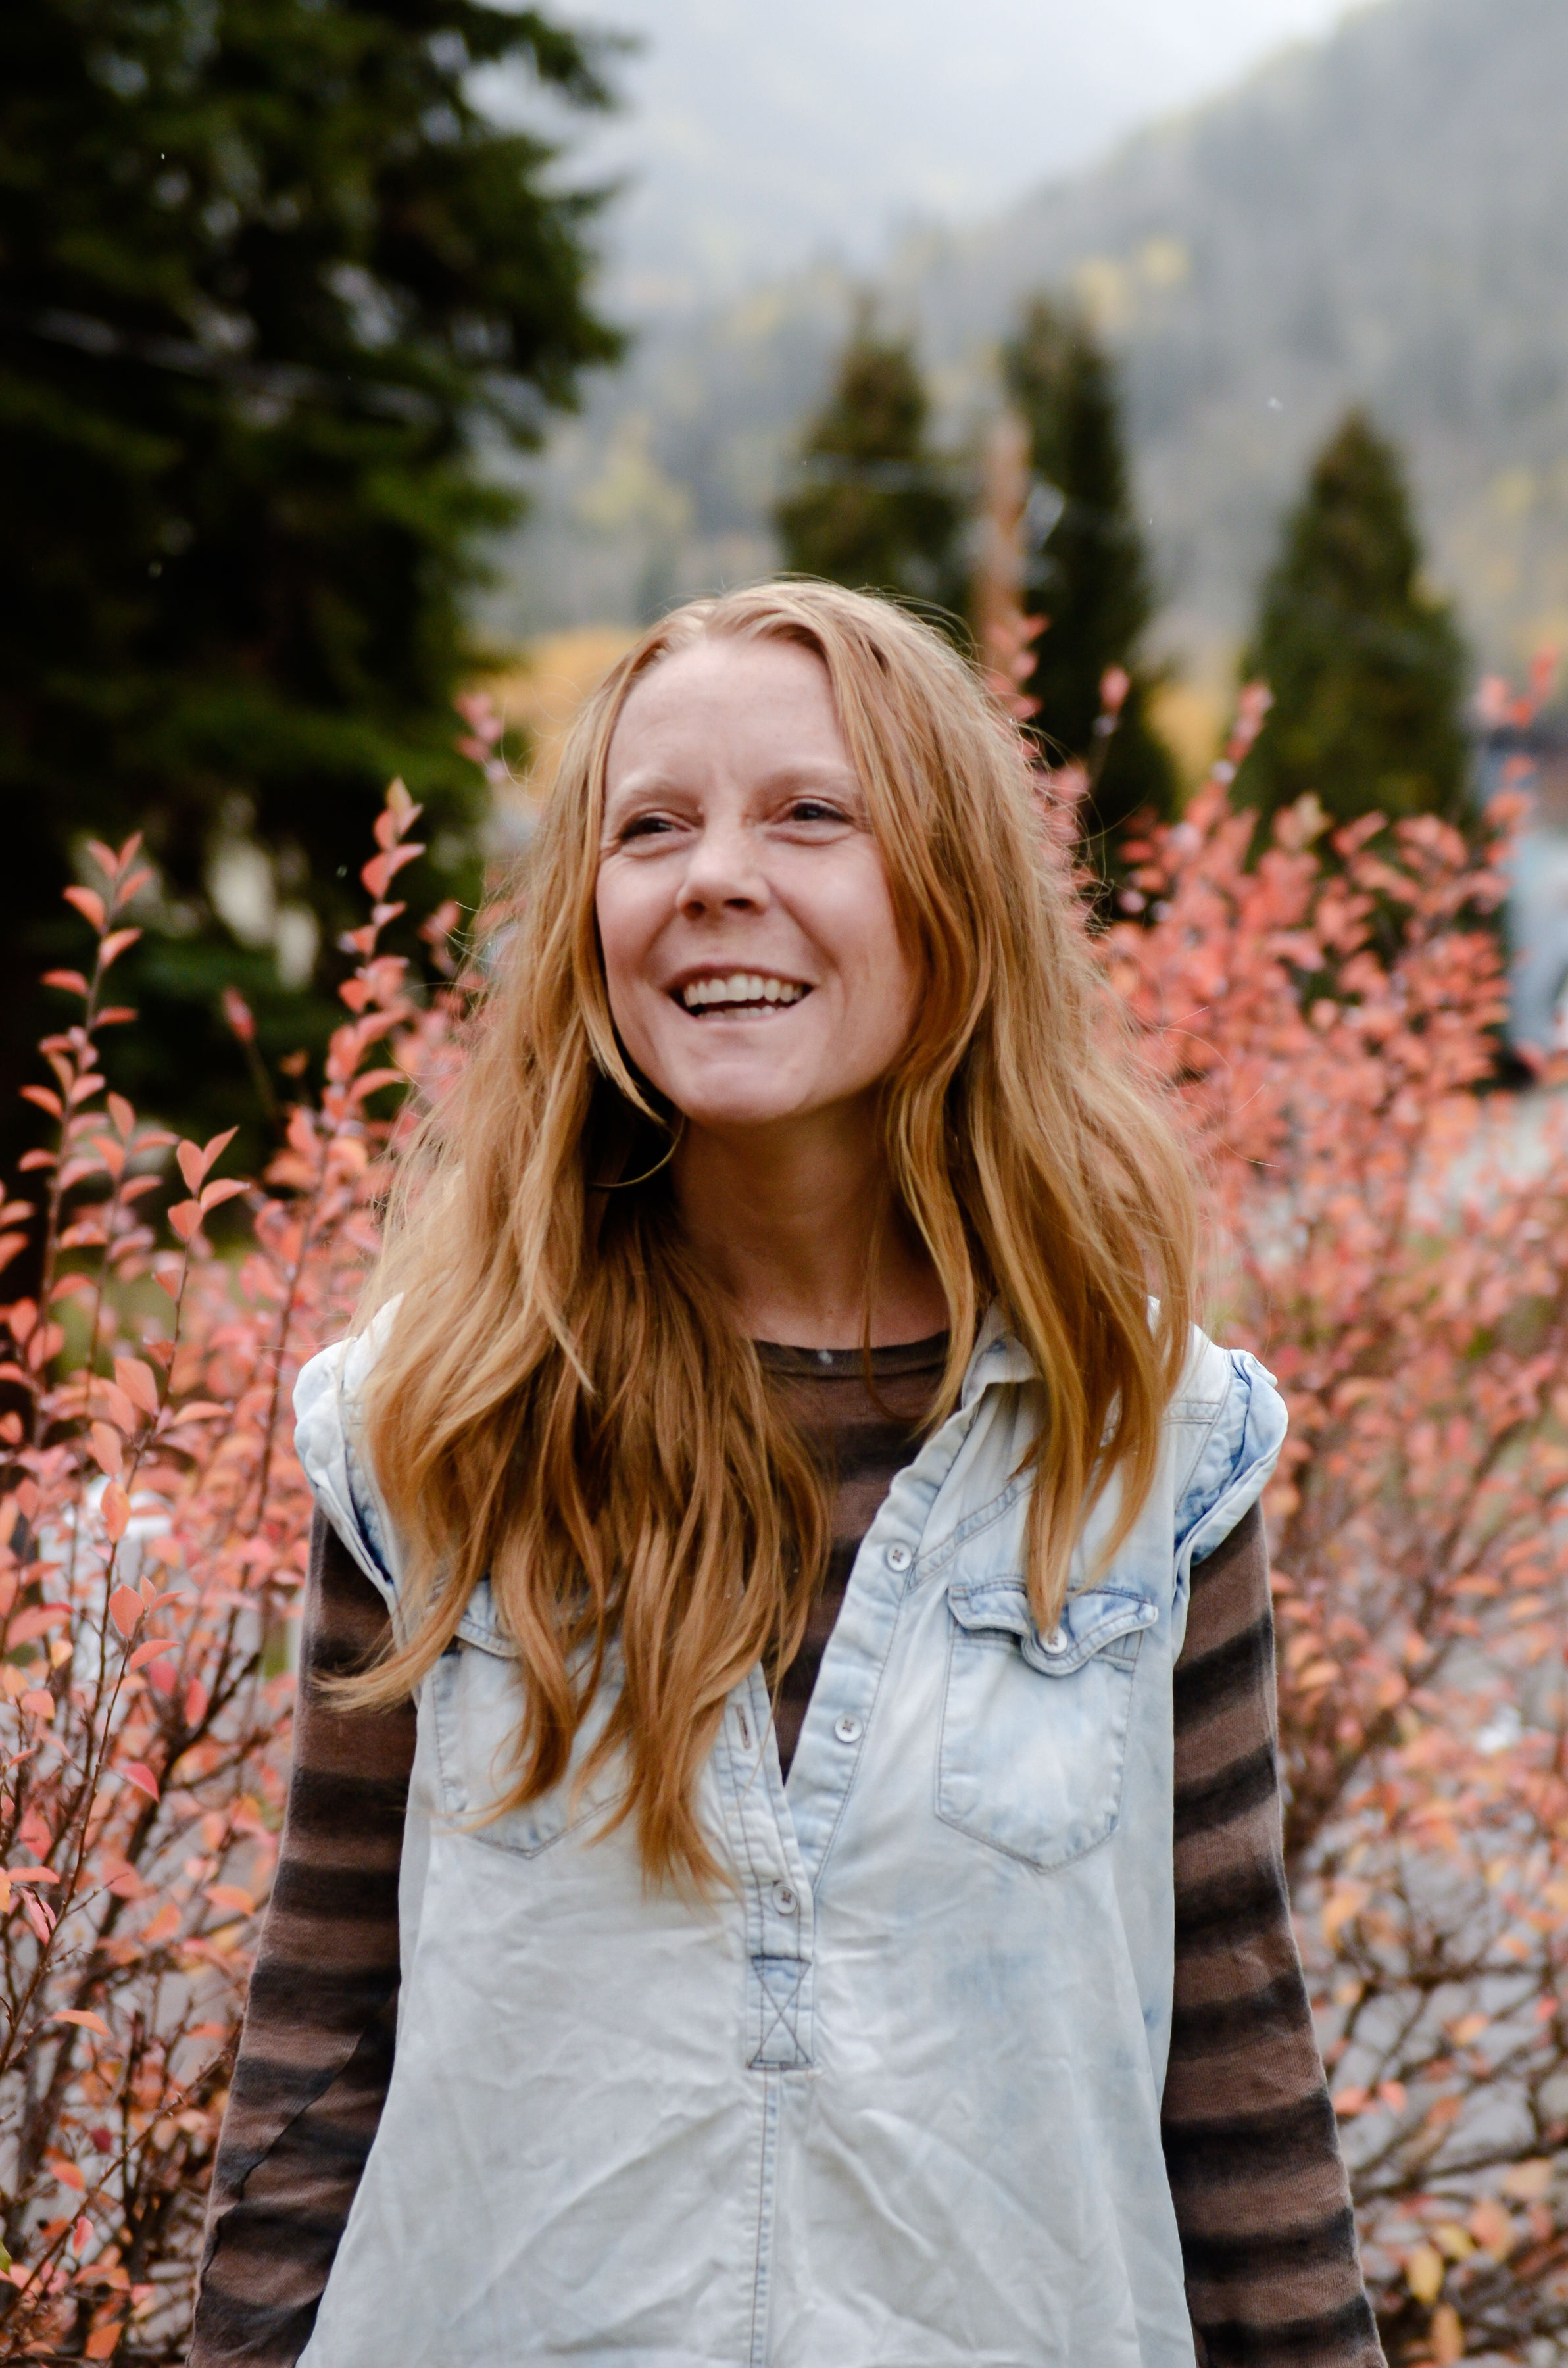 """Miss Trisha - Director/Lead Teacher Trisha Clement has 20 years of experience working with children in a variety of educational venues. Her specializations in emergent and project-based curriculum and experience in Reggio-Emilia inspired preschools as well as outdoor and art education experience allow her to foster the rich, play-based, nature-filled learning environment Mountain Sprouts is proud to offer. Most recently as lead teacher and site supervisor for The Children's Workshop in Oakland, CA, she helped establish a new school and led curriculum for the Reggio-inspired preschool. Since leaving Mountain Sprouts in 2010, Trisha has pursued a bachelor's degree and conducted research focused on social-emotional intelligence curriculum and created an early childhood education art curriculum for school's of all budgets titled, """"Teach Your Art Out."""" She's spent professional development hours specializing in sensory play and Waldorf educational philosophies. Telluride residents may know Trisha from the unique theater camps she's run for Telluride Academy since 1998."""